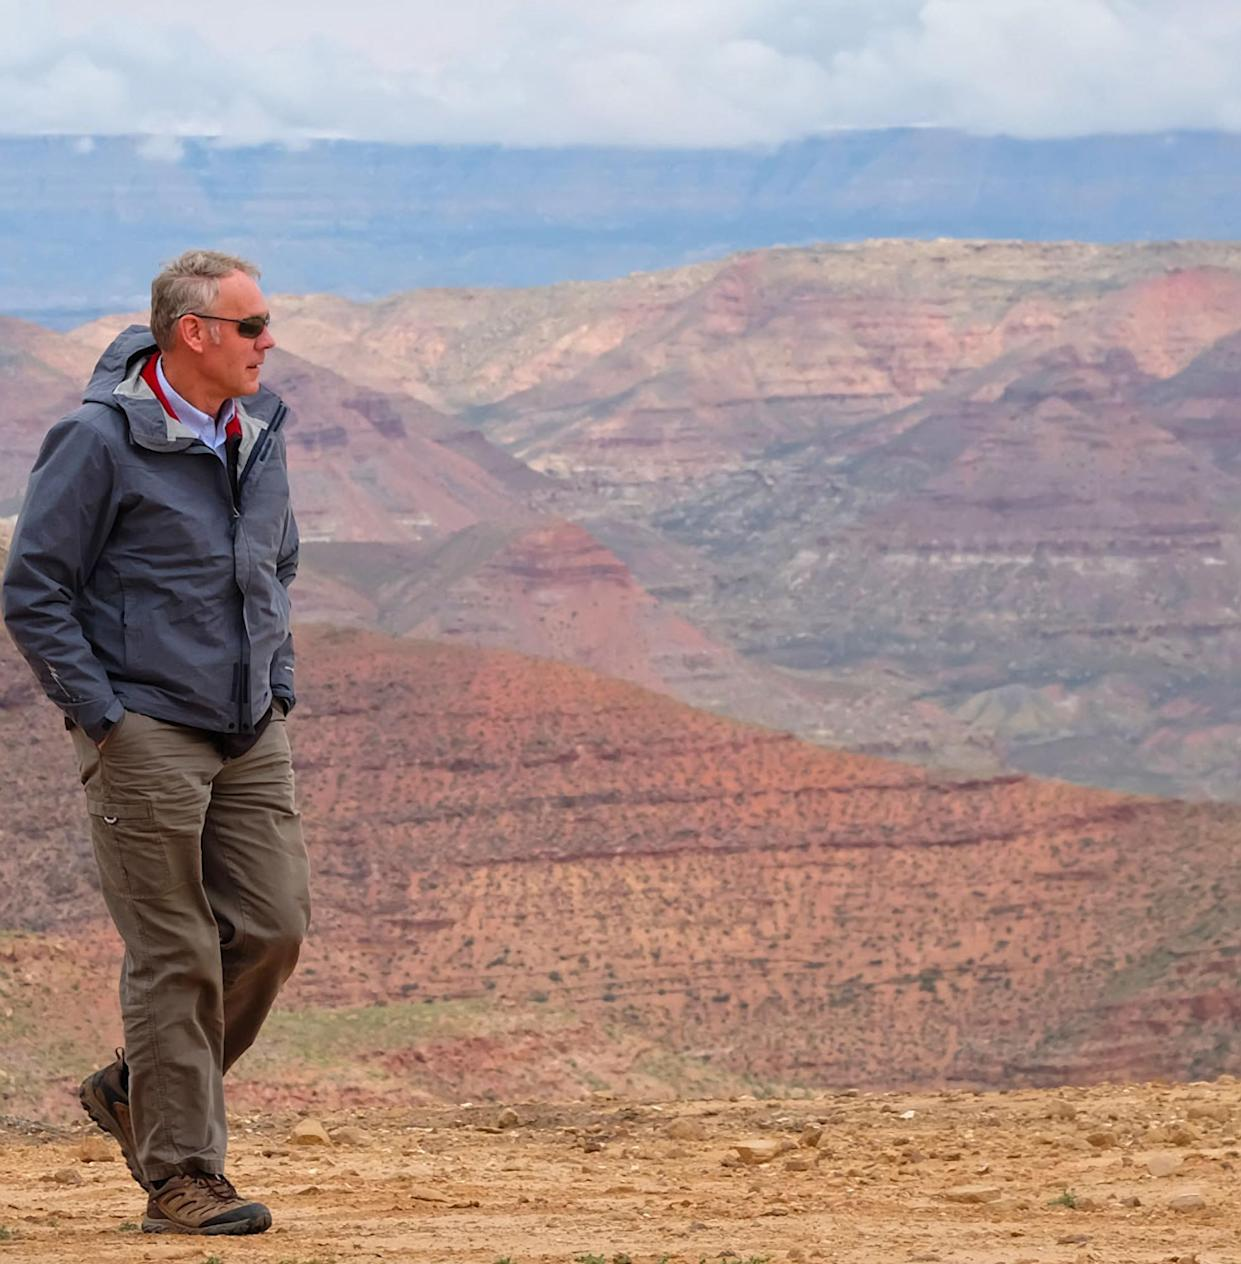 Secretary of the Interior Ryan Zinke during a tour of Grand Staircase-Escalante National Monument in May 2017. (Photo: Doi/Planet Pix via ZUMA Wire)